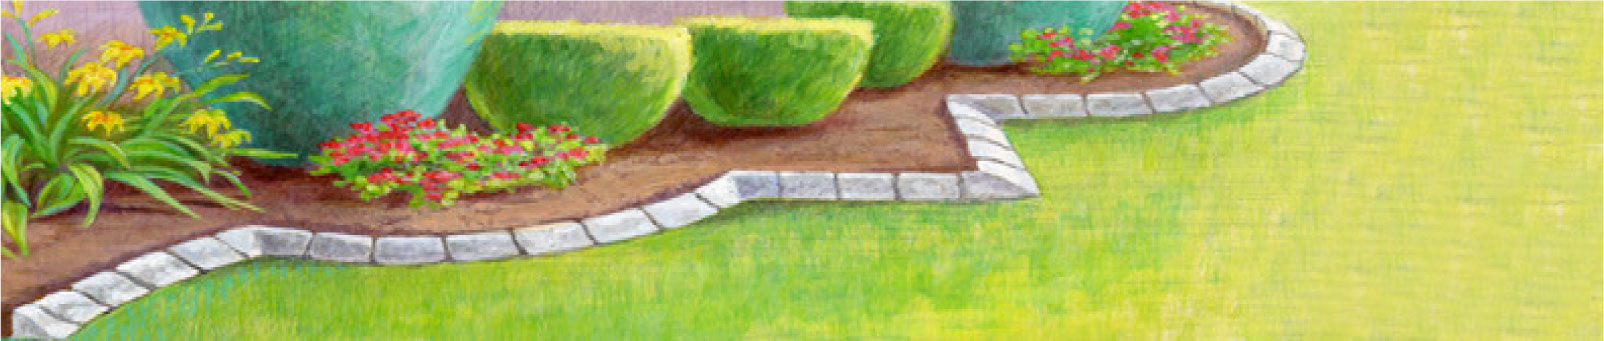 Garden And Landscape Edging Installation Instructions